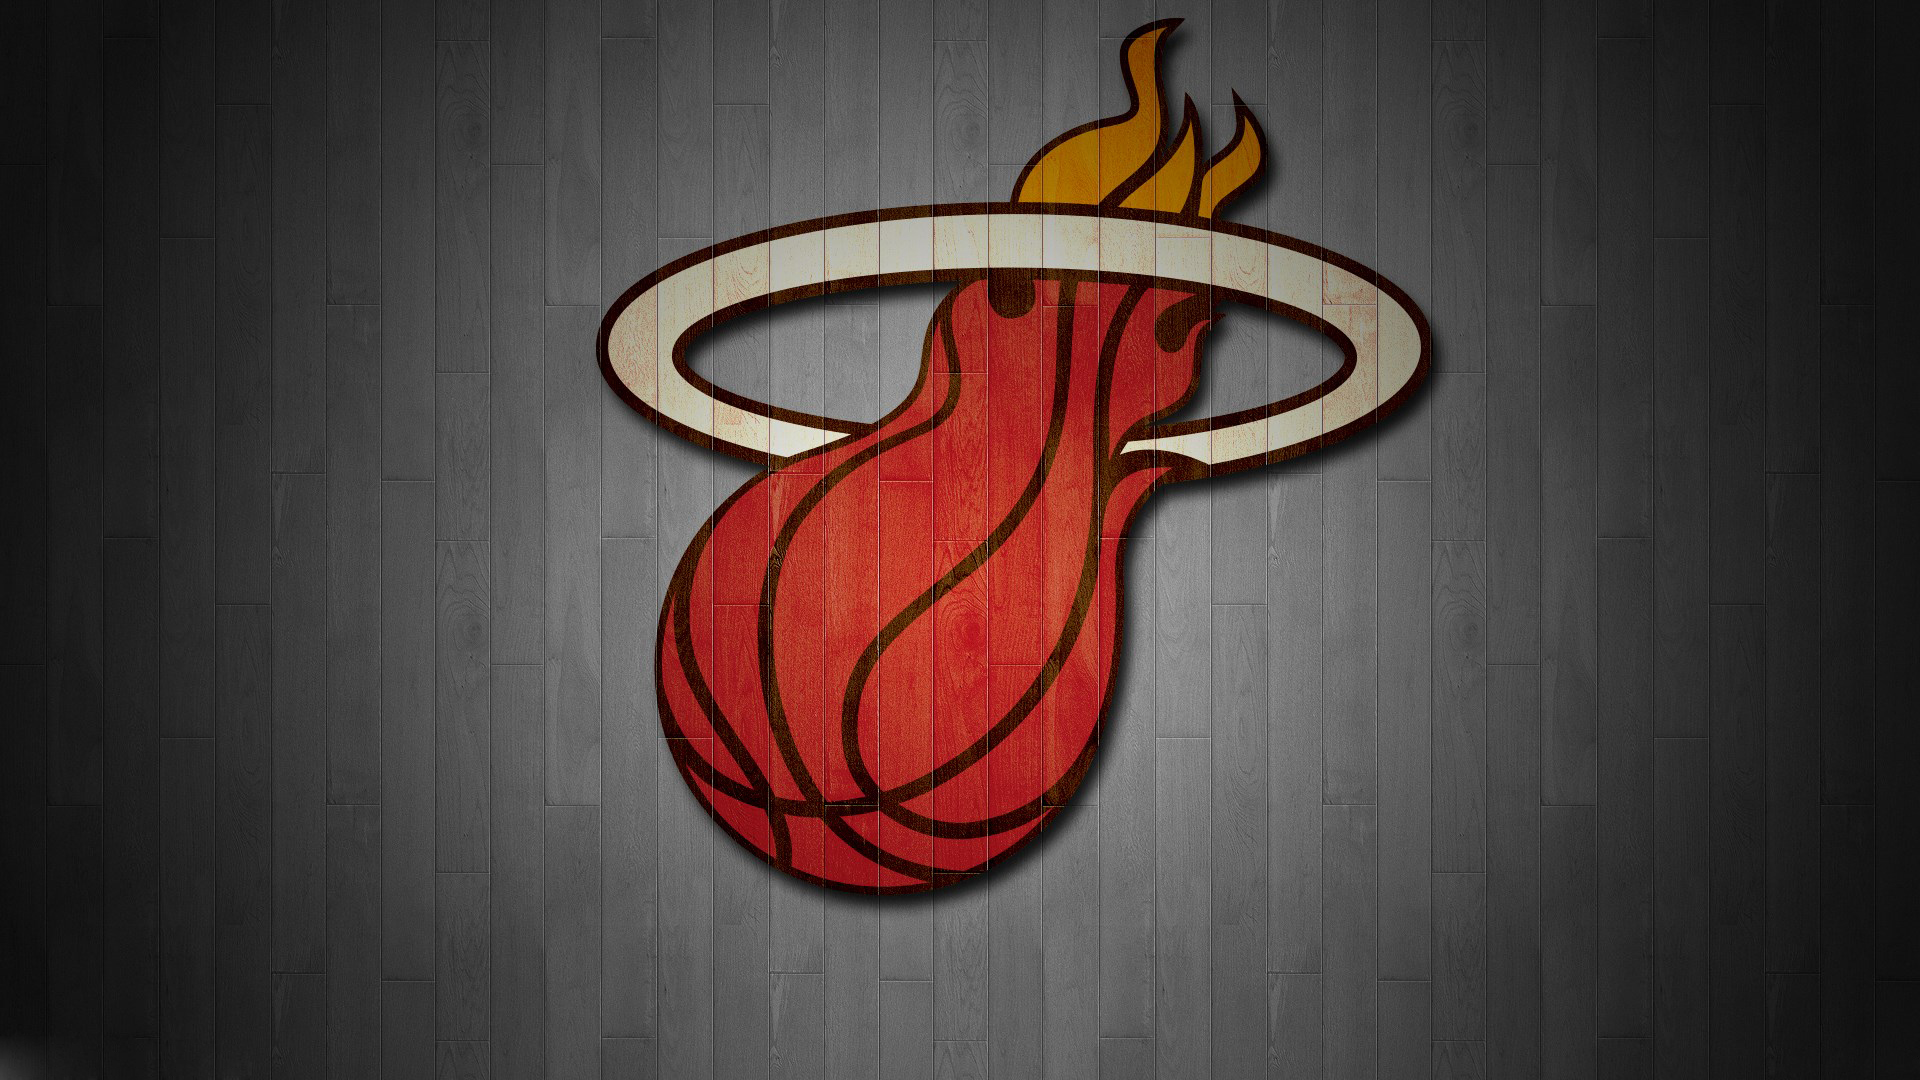 Miami Heat Logo Wallpaper HD   Picseriocom 1920x1080